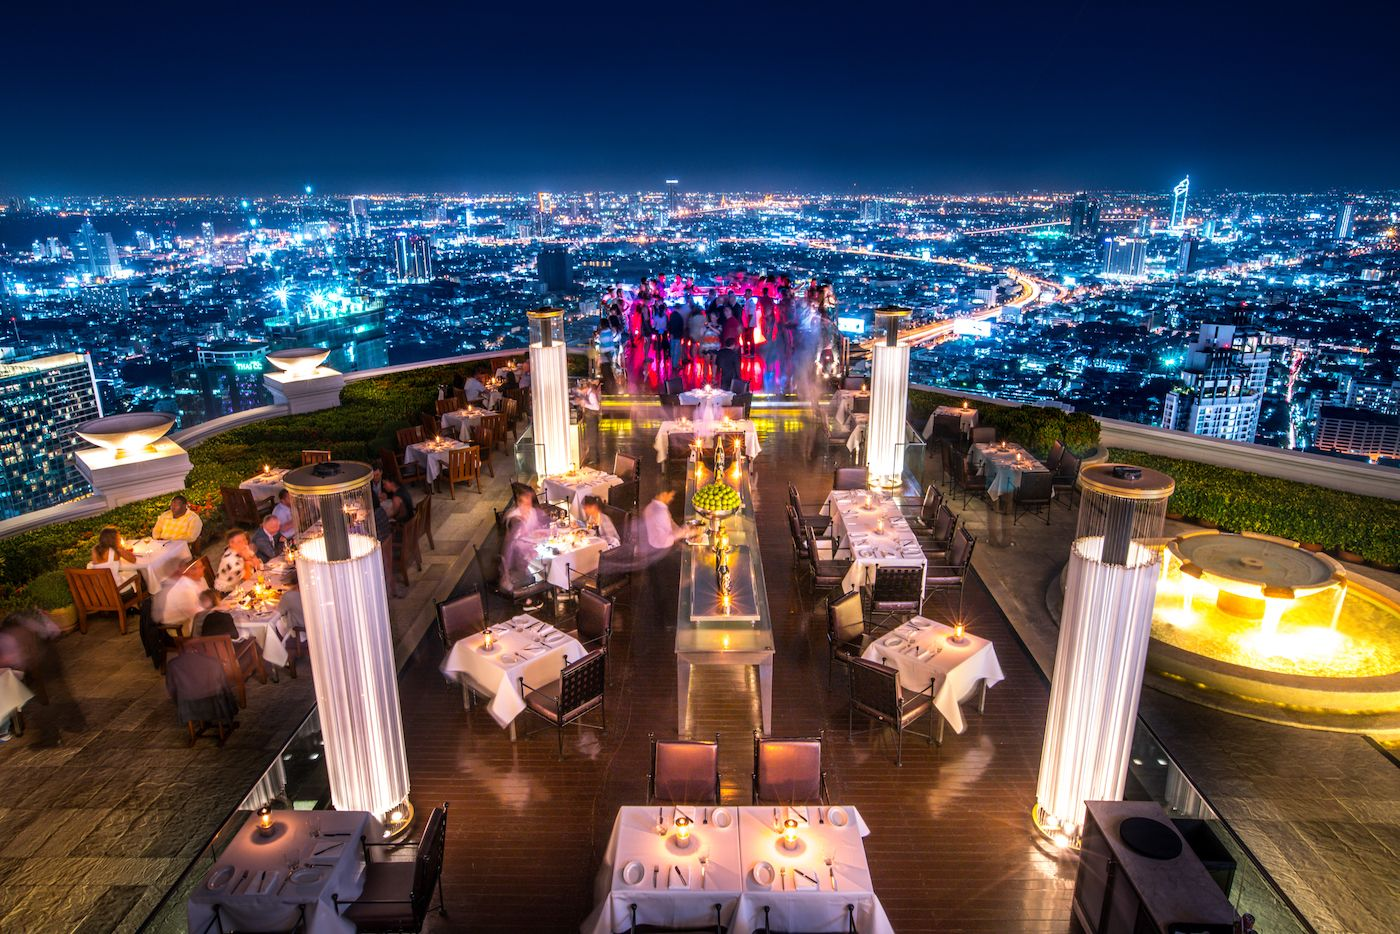 aerial view of restaurant terrace with heaters and city in the background